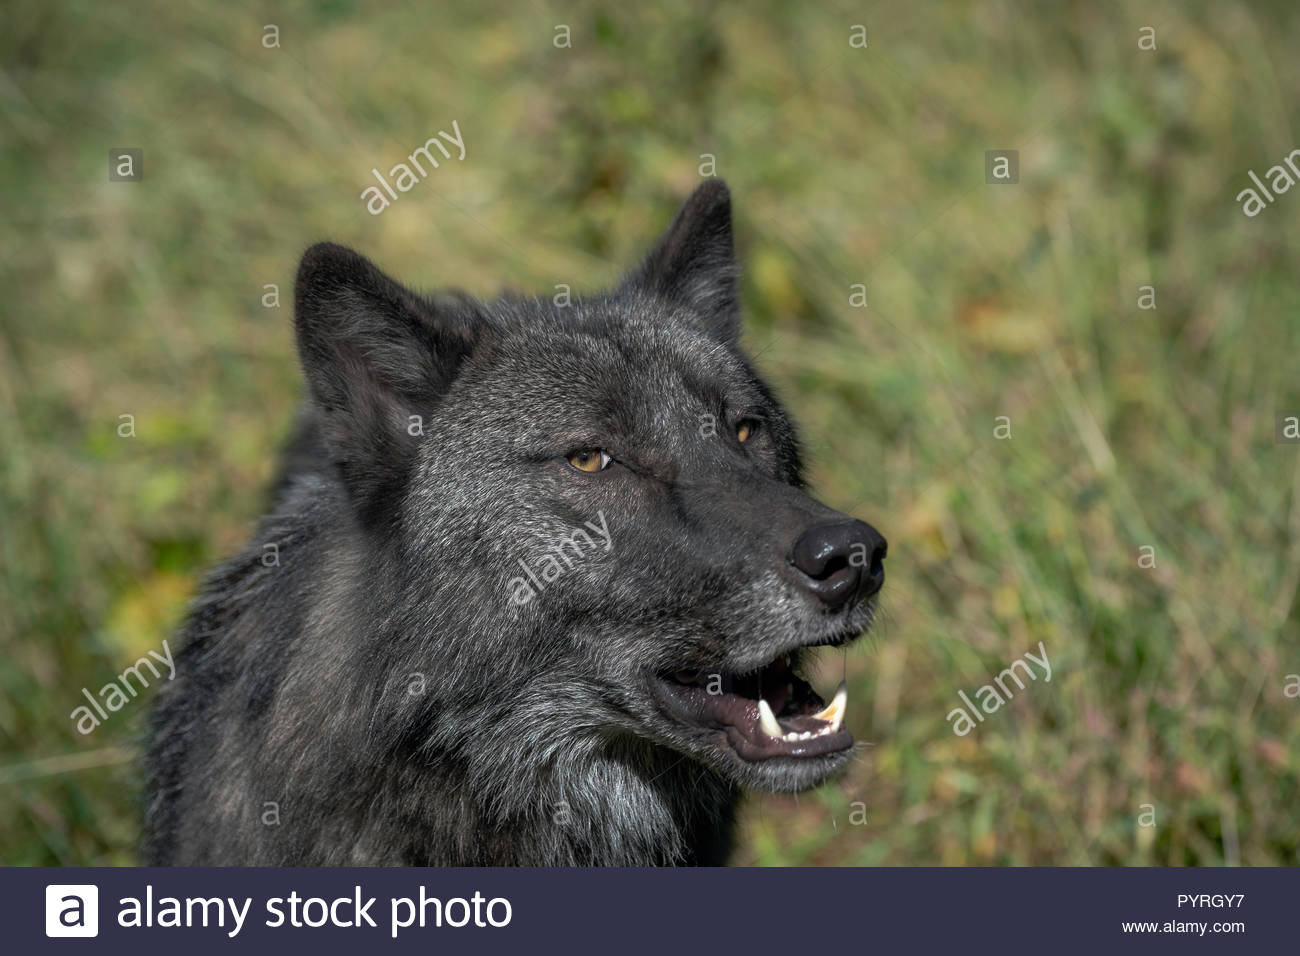 Timber Wolf (also known as a Grey Wolf or Gray Wolf) with black and silver markings and gold eyes looking off to the side with its mouth open showing - Stock Image